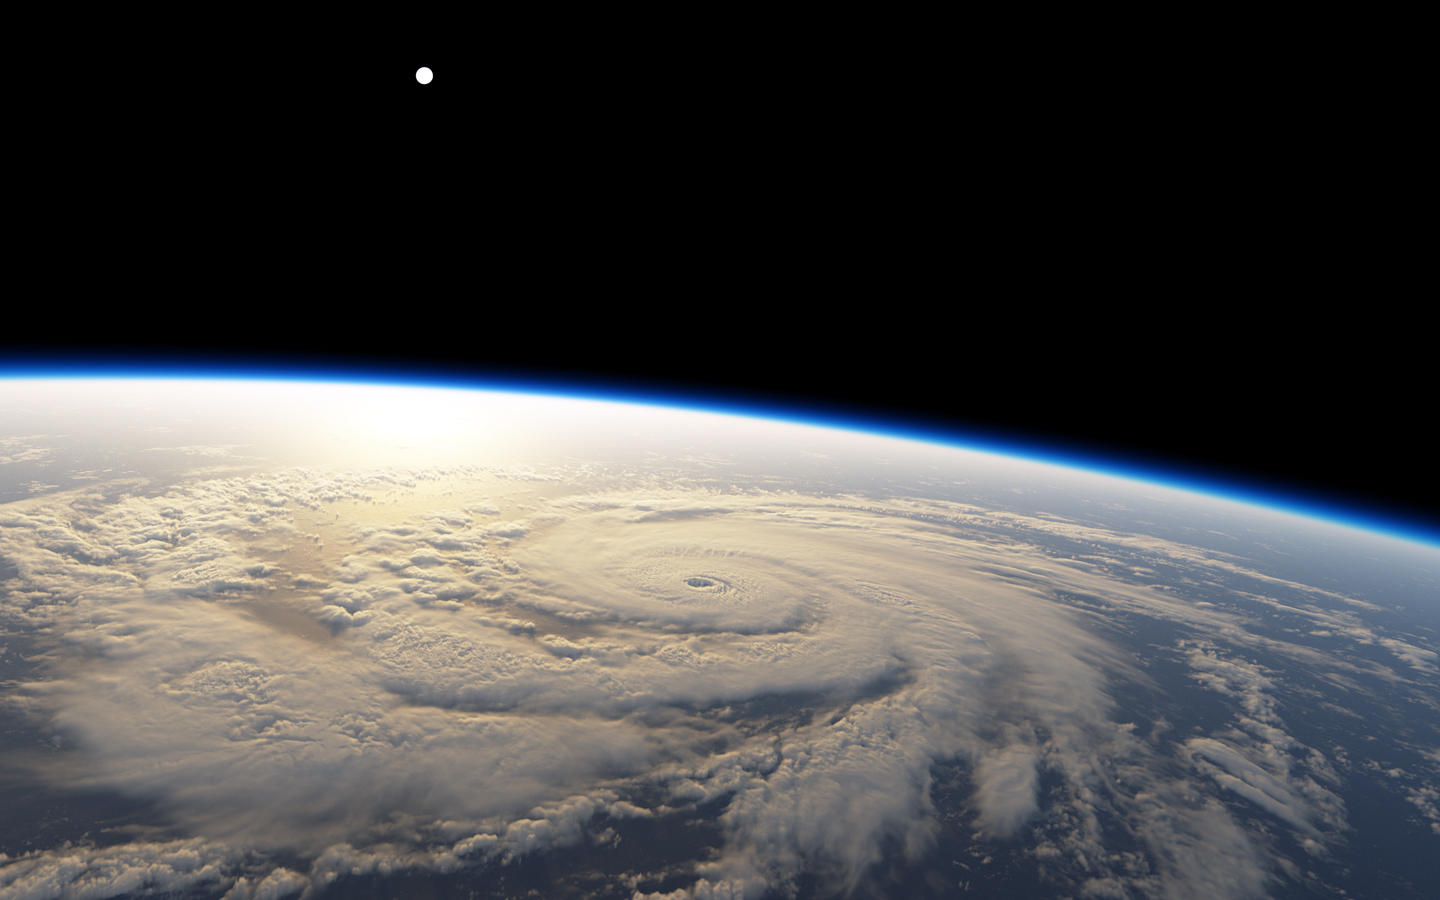 100% Proof NASA Fakes Images of Earth Planetary_hurricane___stock_by_darink-d3i8chy